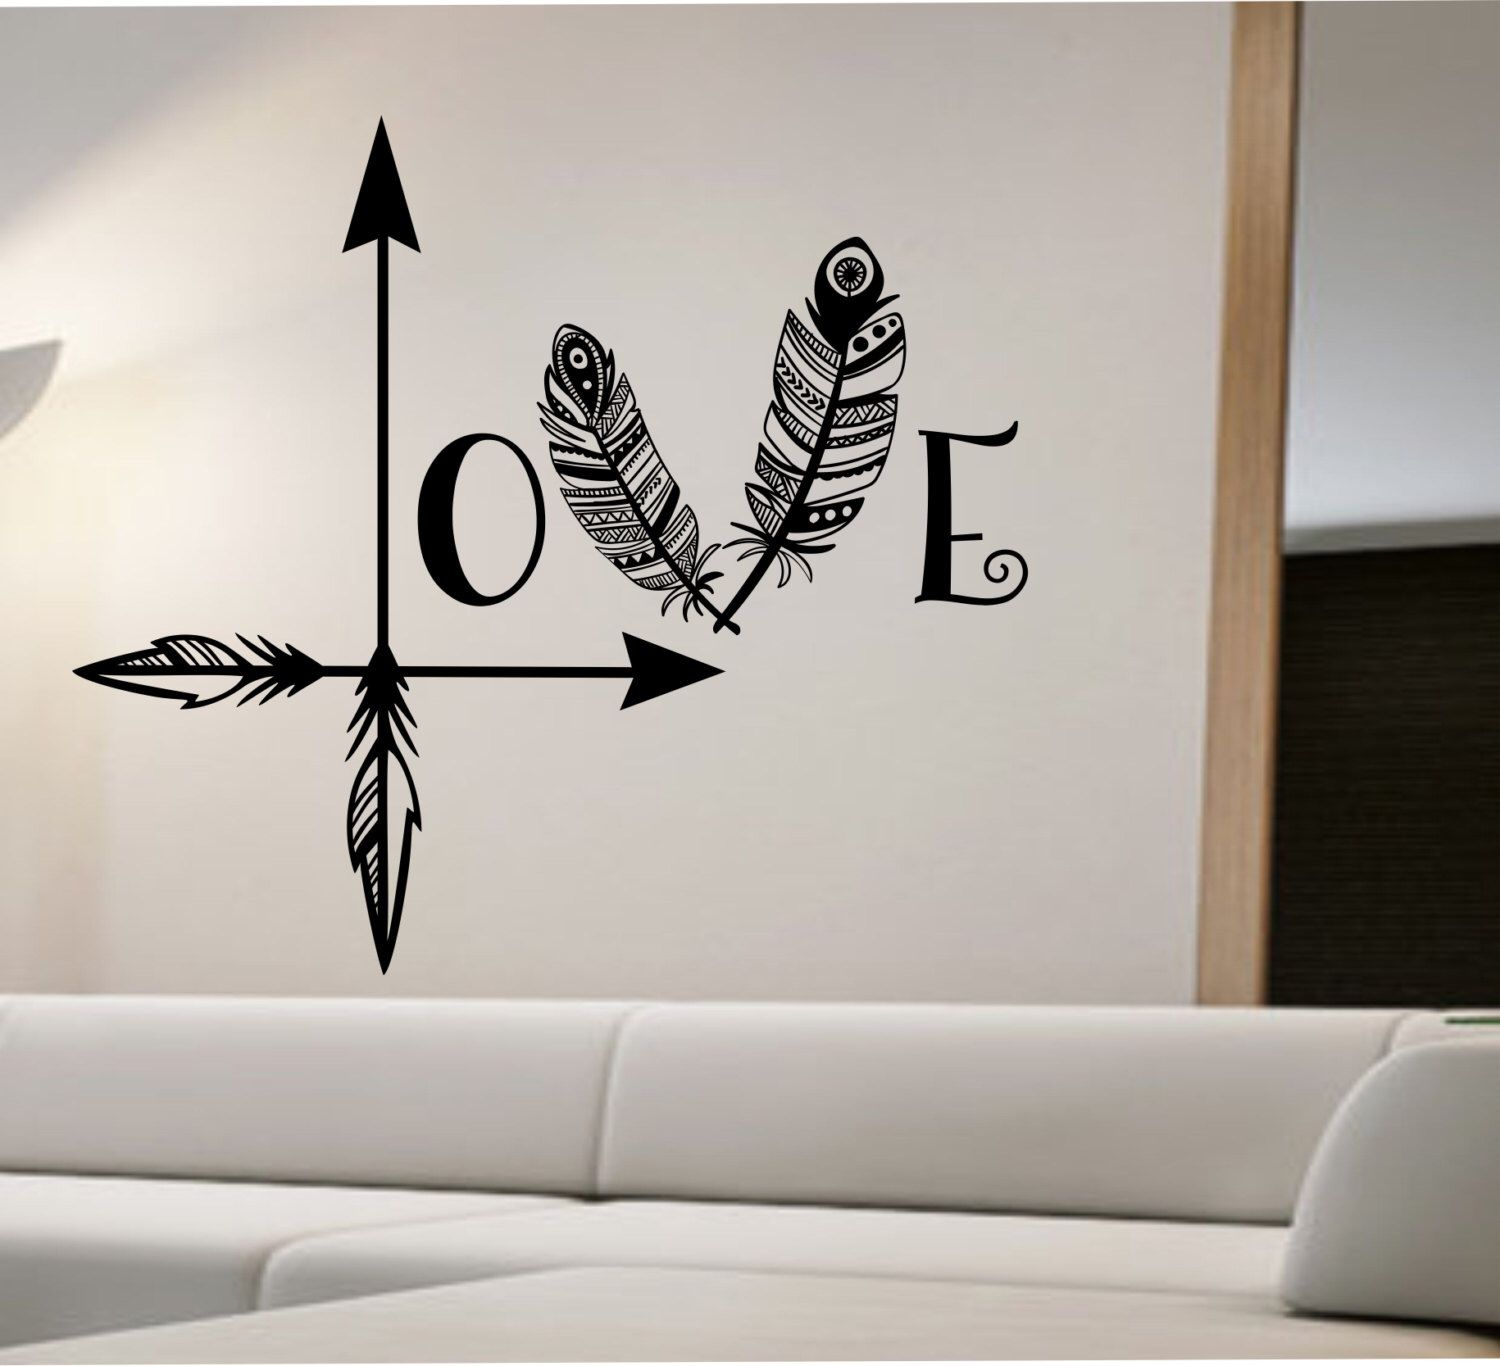 Wall Art Decor Vinyl : Arrow feather love wall decal namaste vinyl sticker art